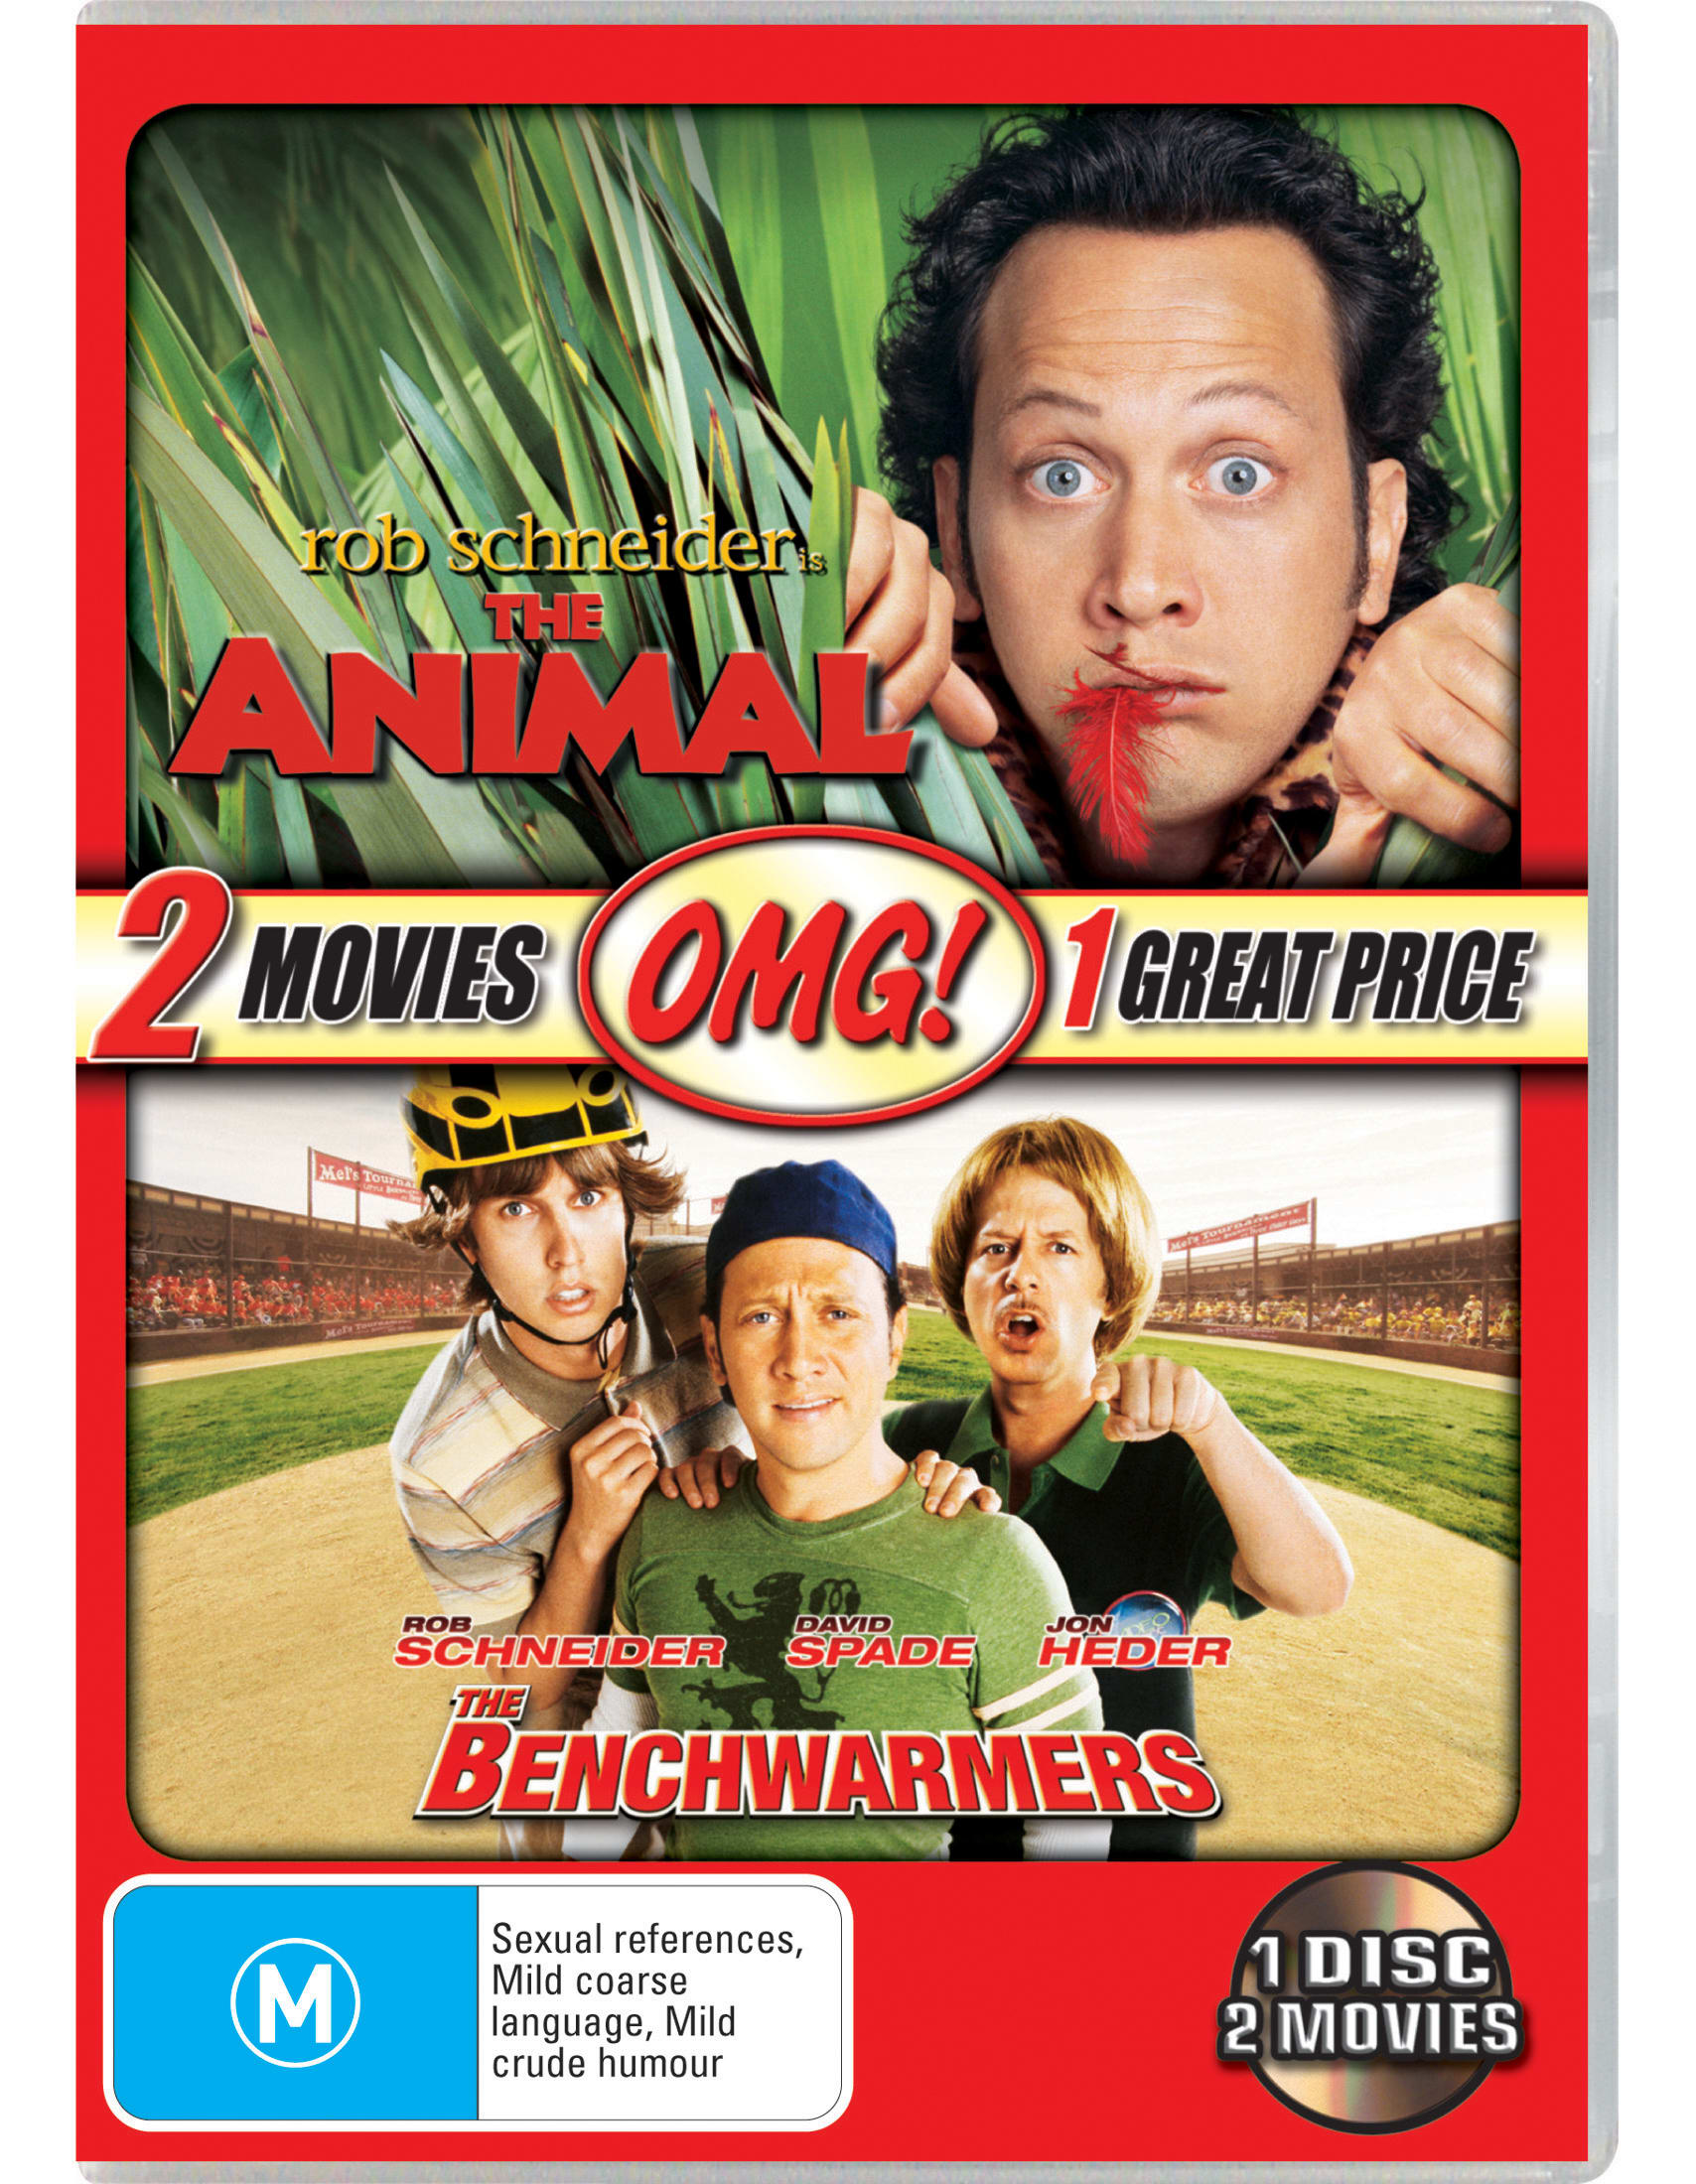 The Animal/The Benchwarmers [DVD]